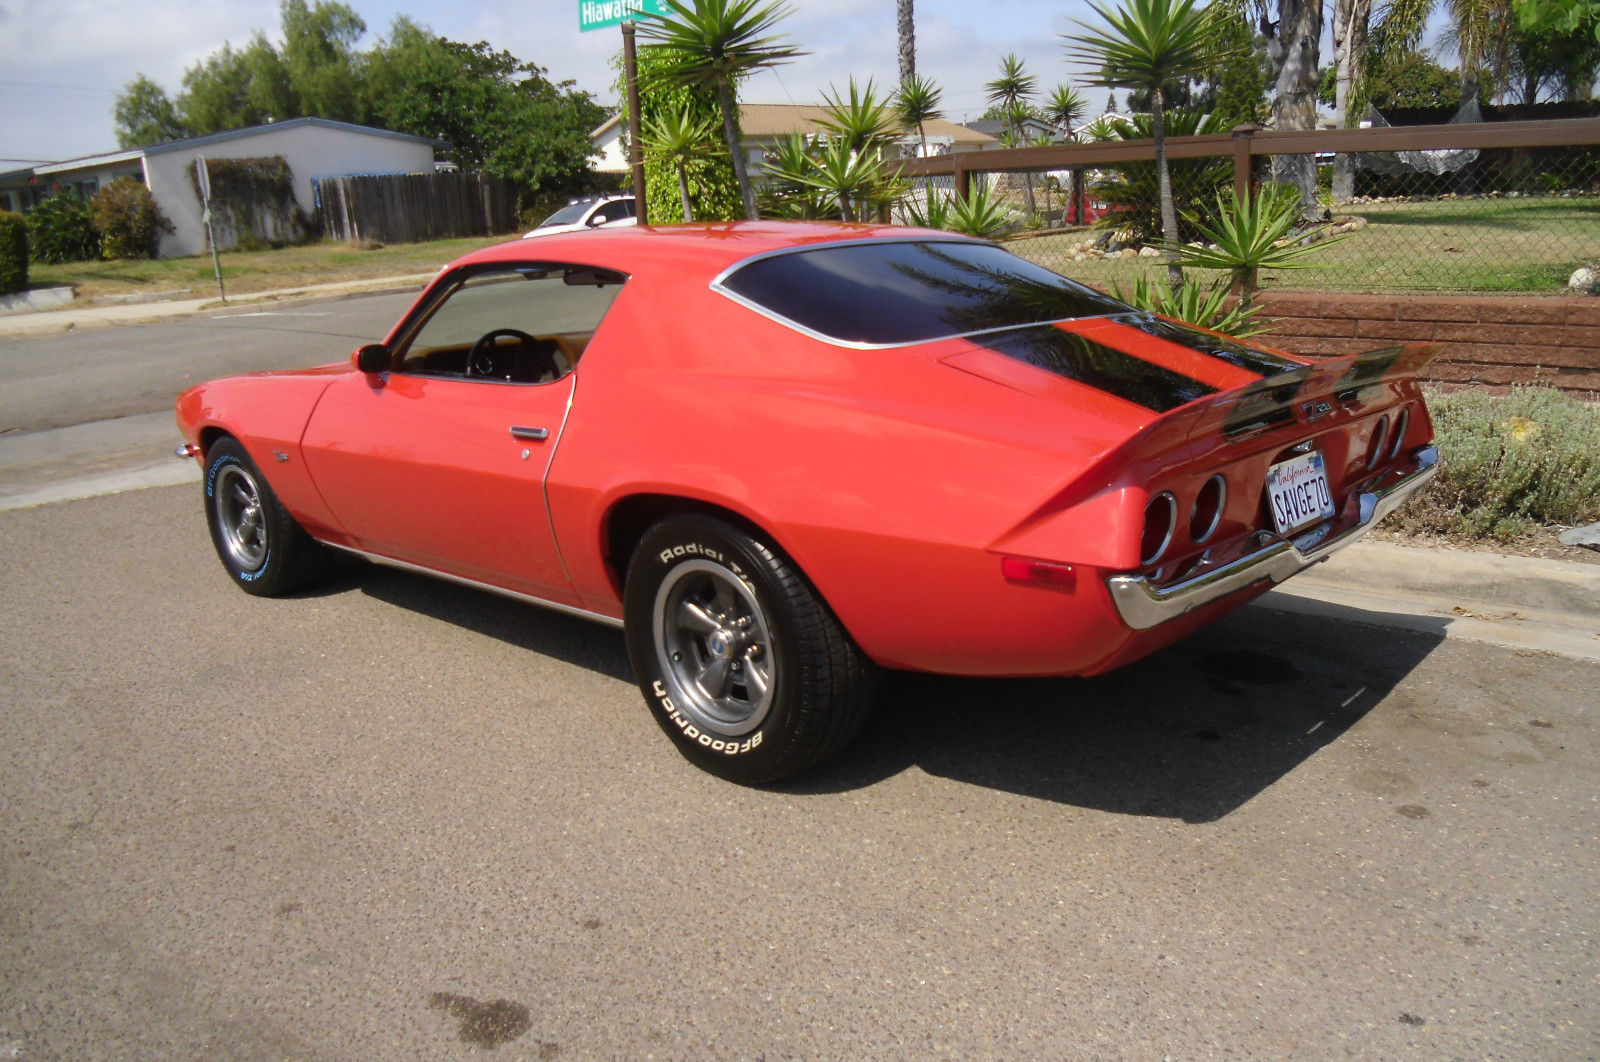 1973 Camaro Rs Z28 4 Speed Lt350 Show Car